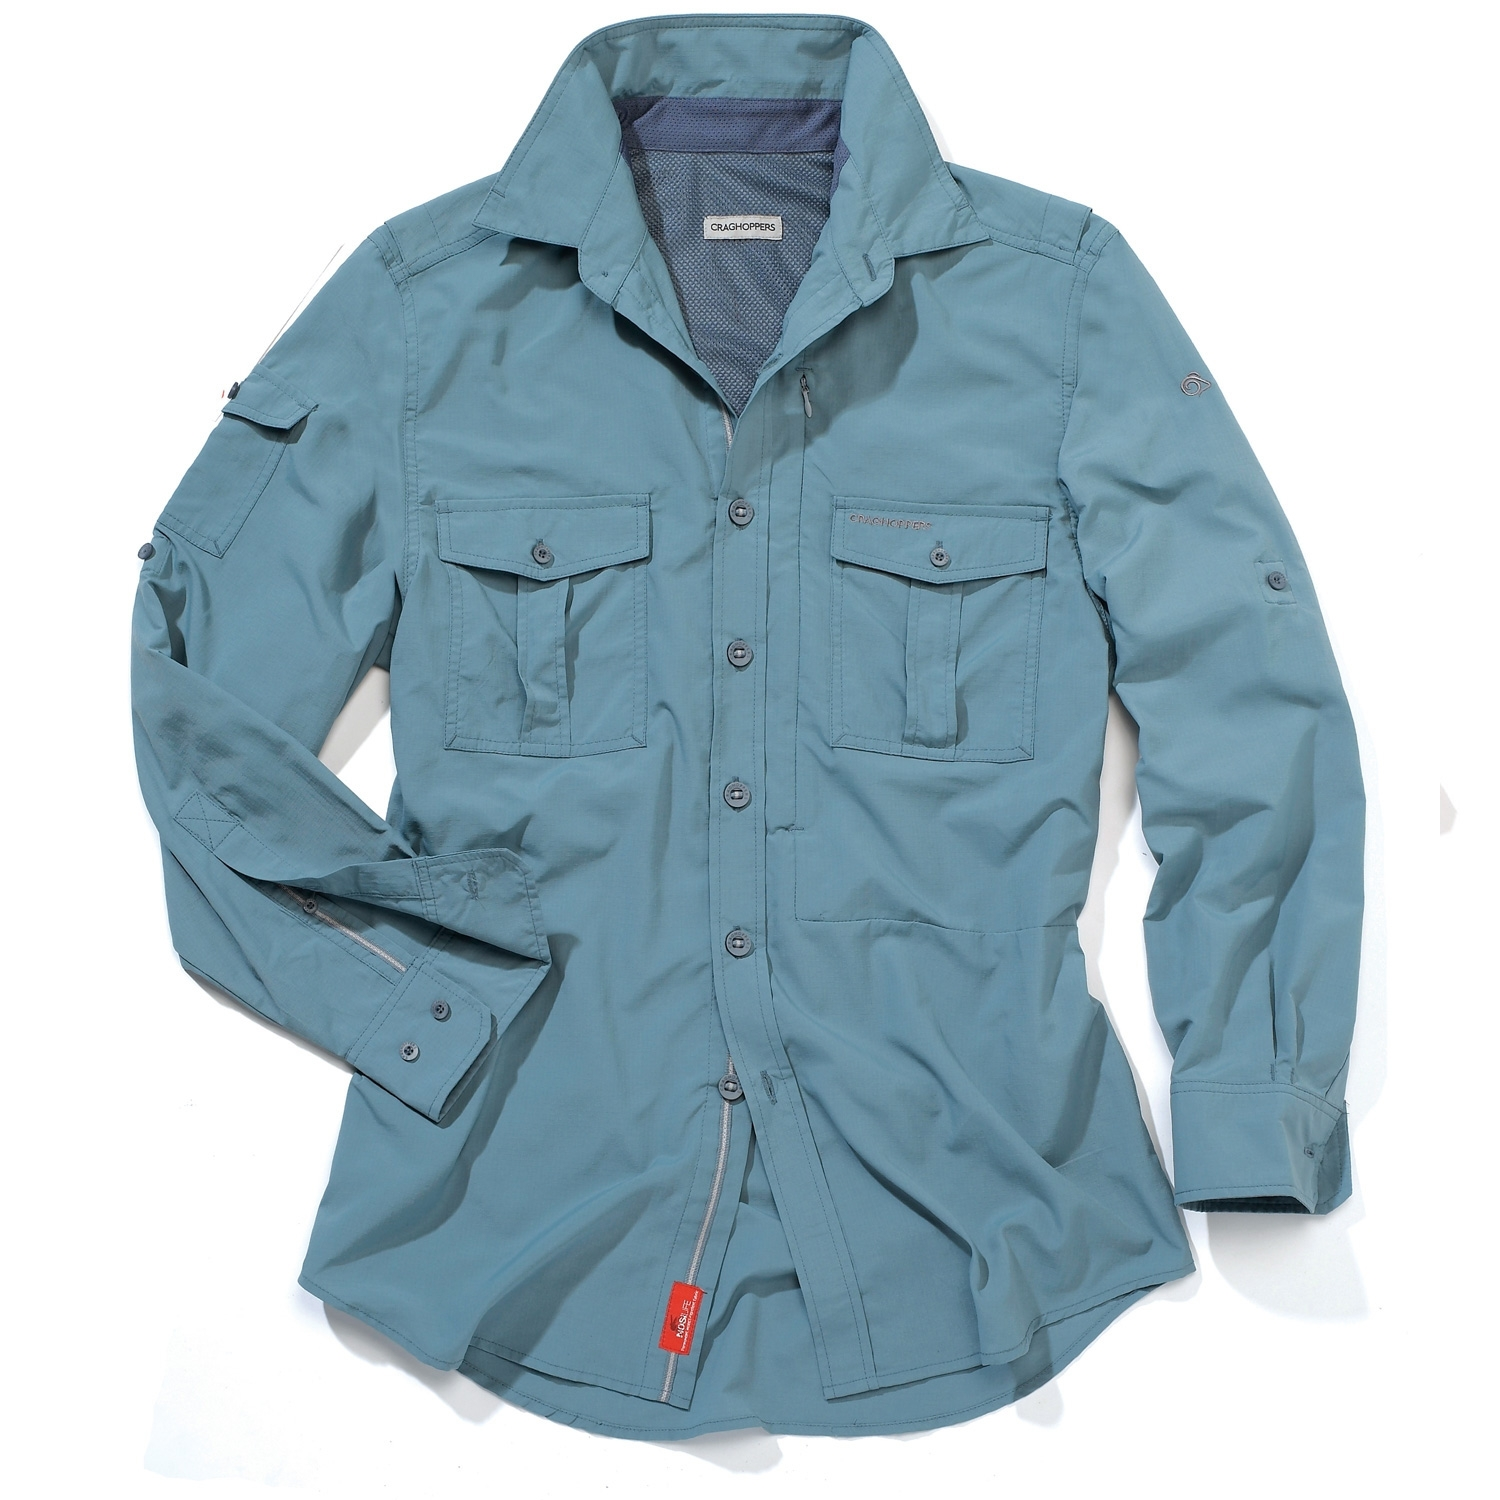 Image of Craghoppers NosiLife Long-Sleeve Shirt - Vapour Blue 58c305fcfba4